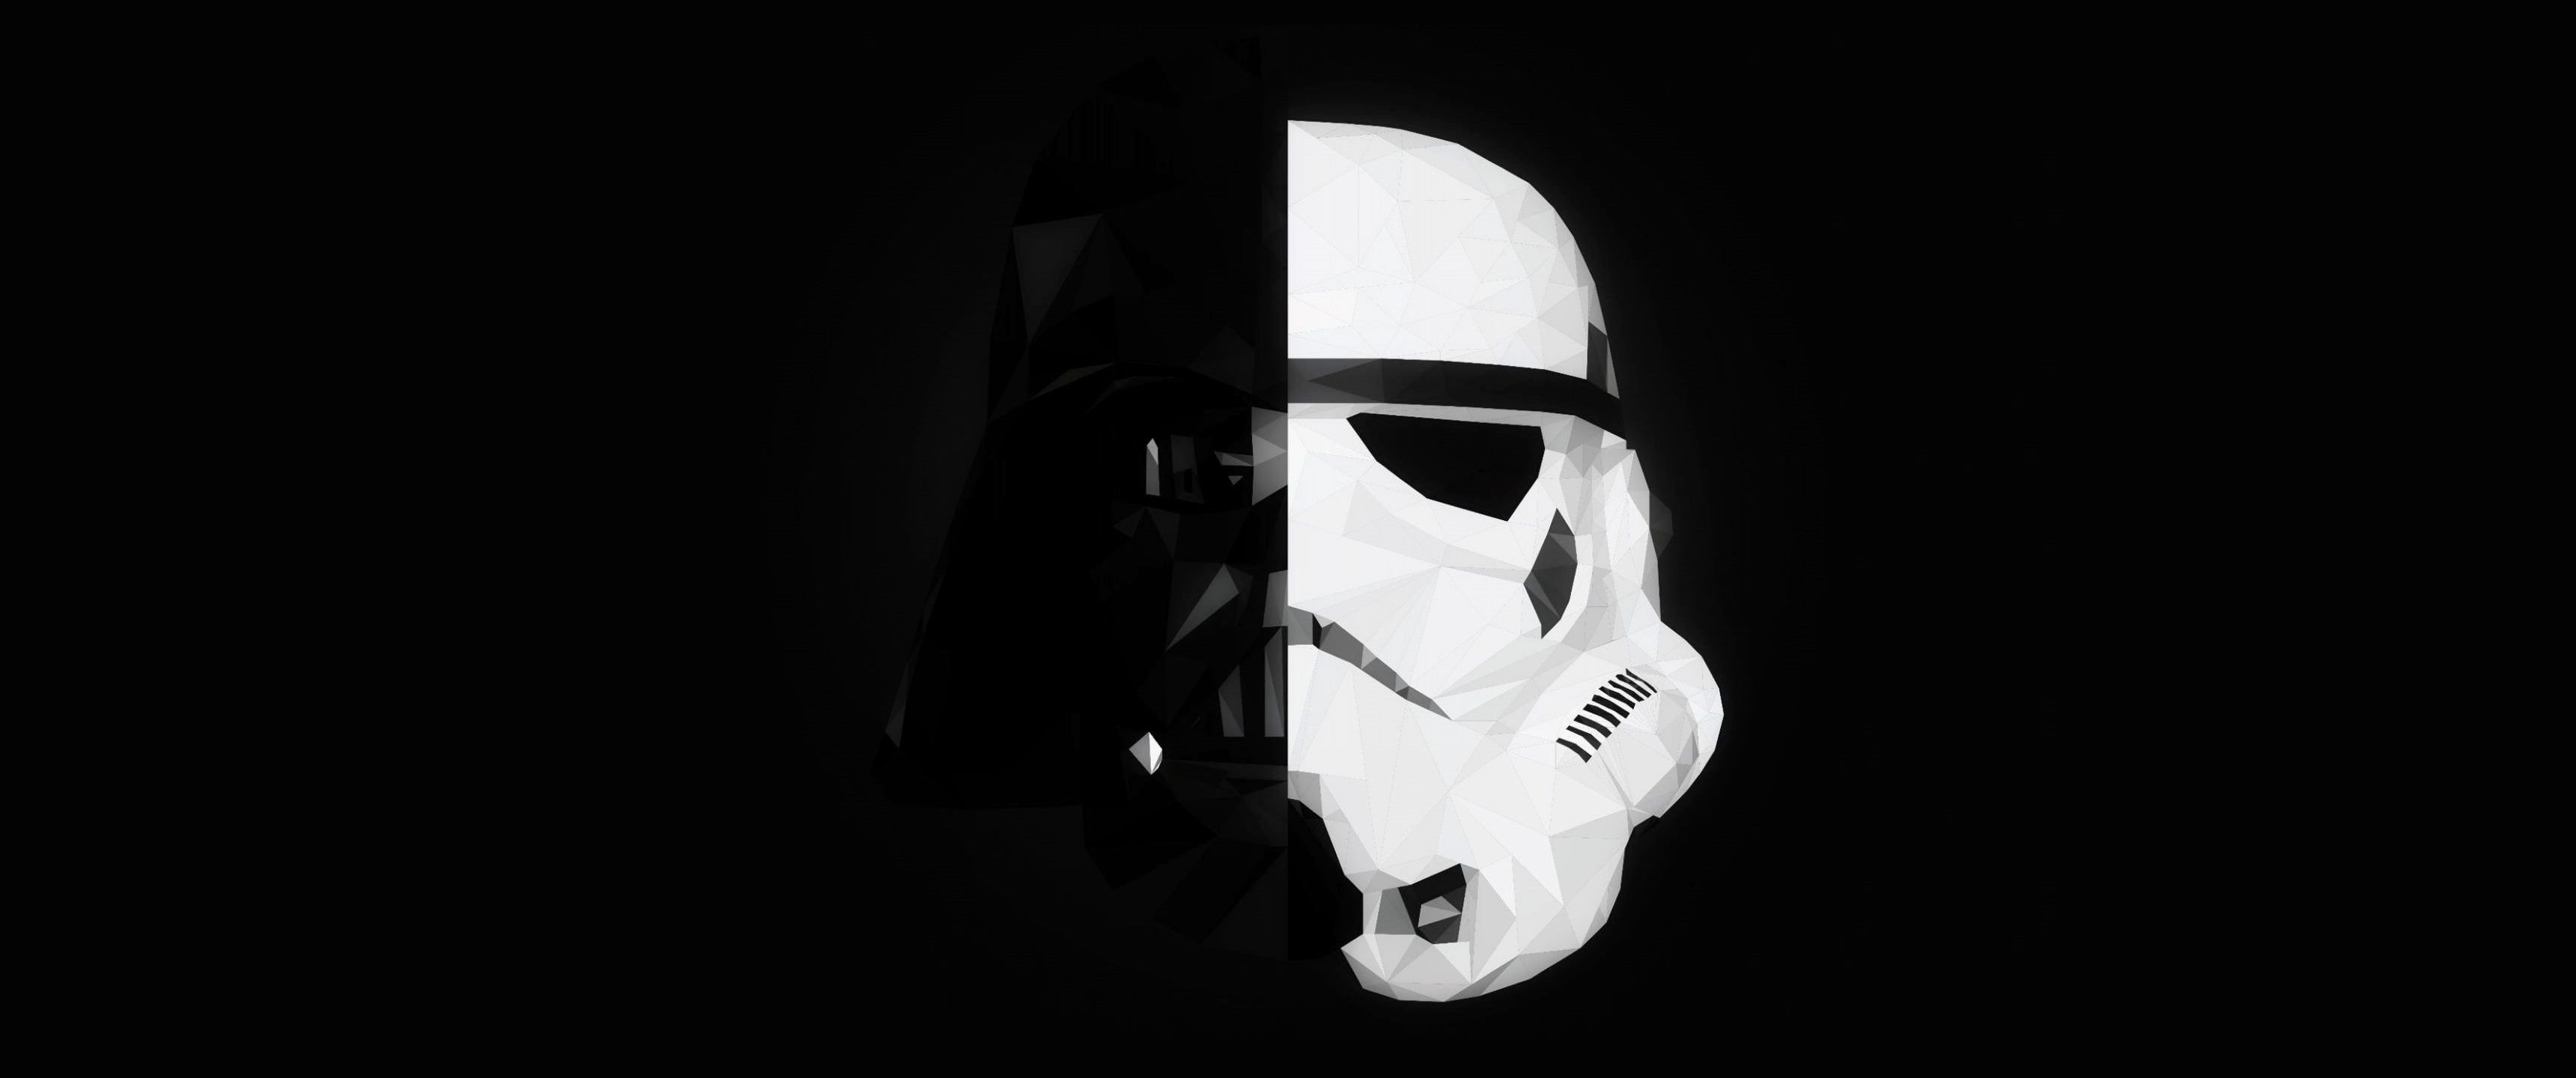 Black and white mask of Stormtrooper